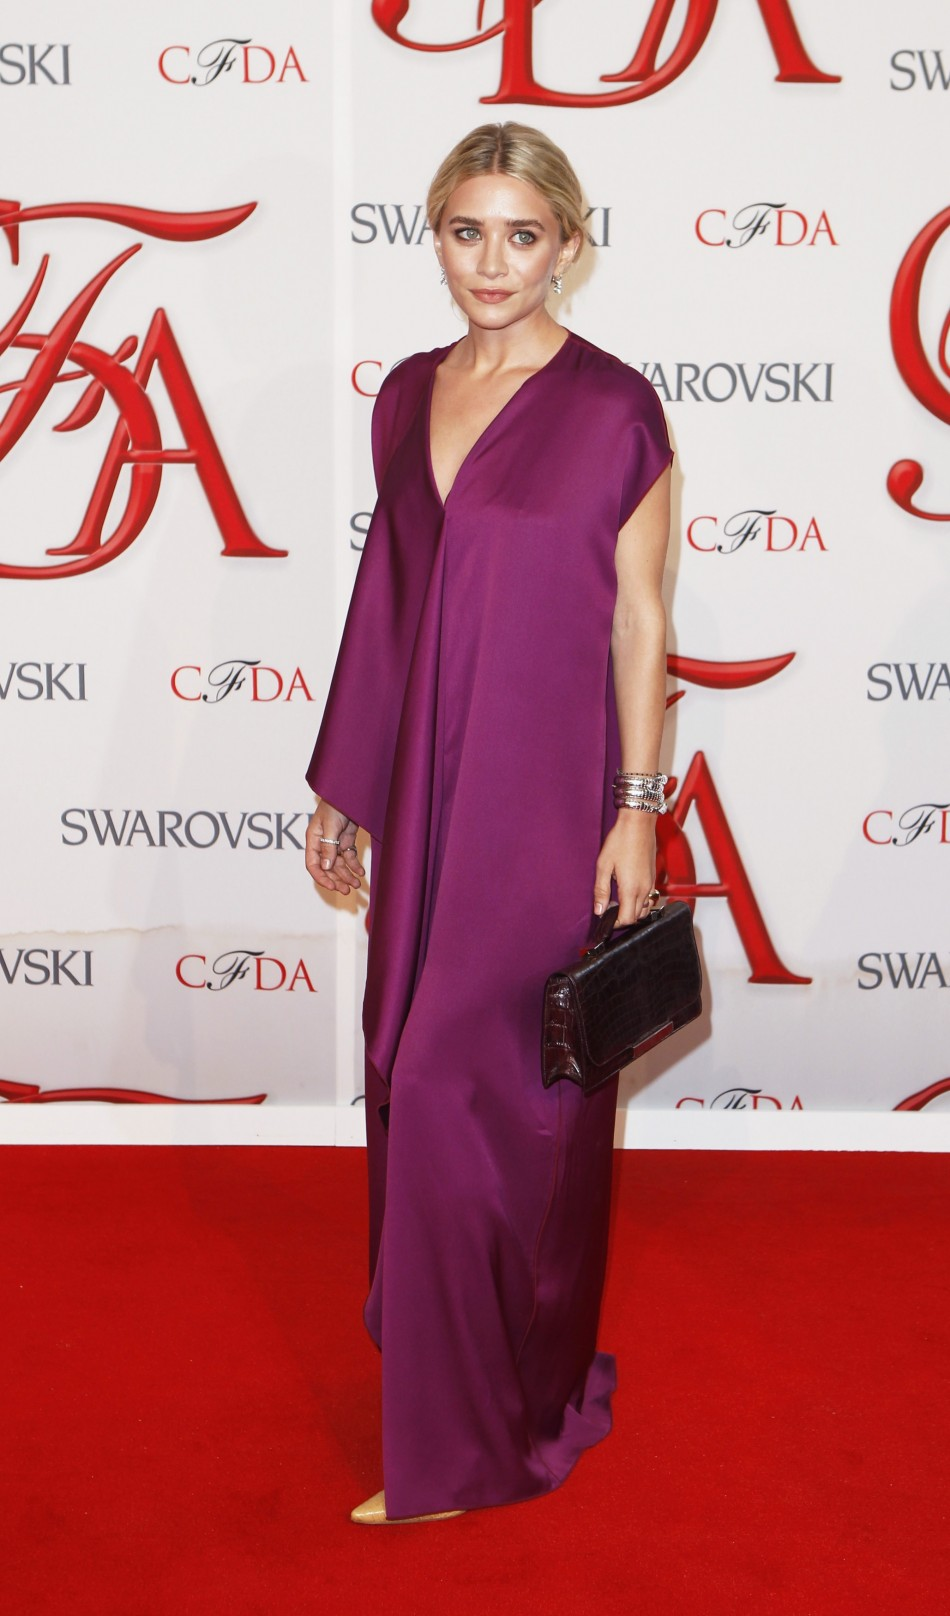 Actress and designer Ashley Olsen arrives to attend the 2012 CFDA Fashion Awards in New York